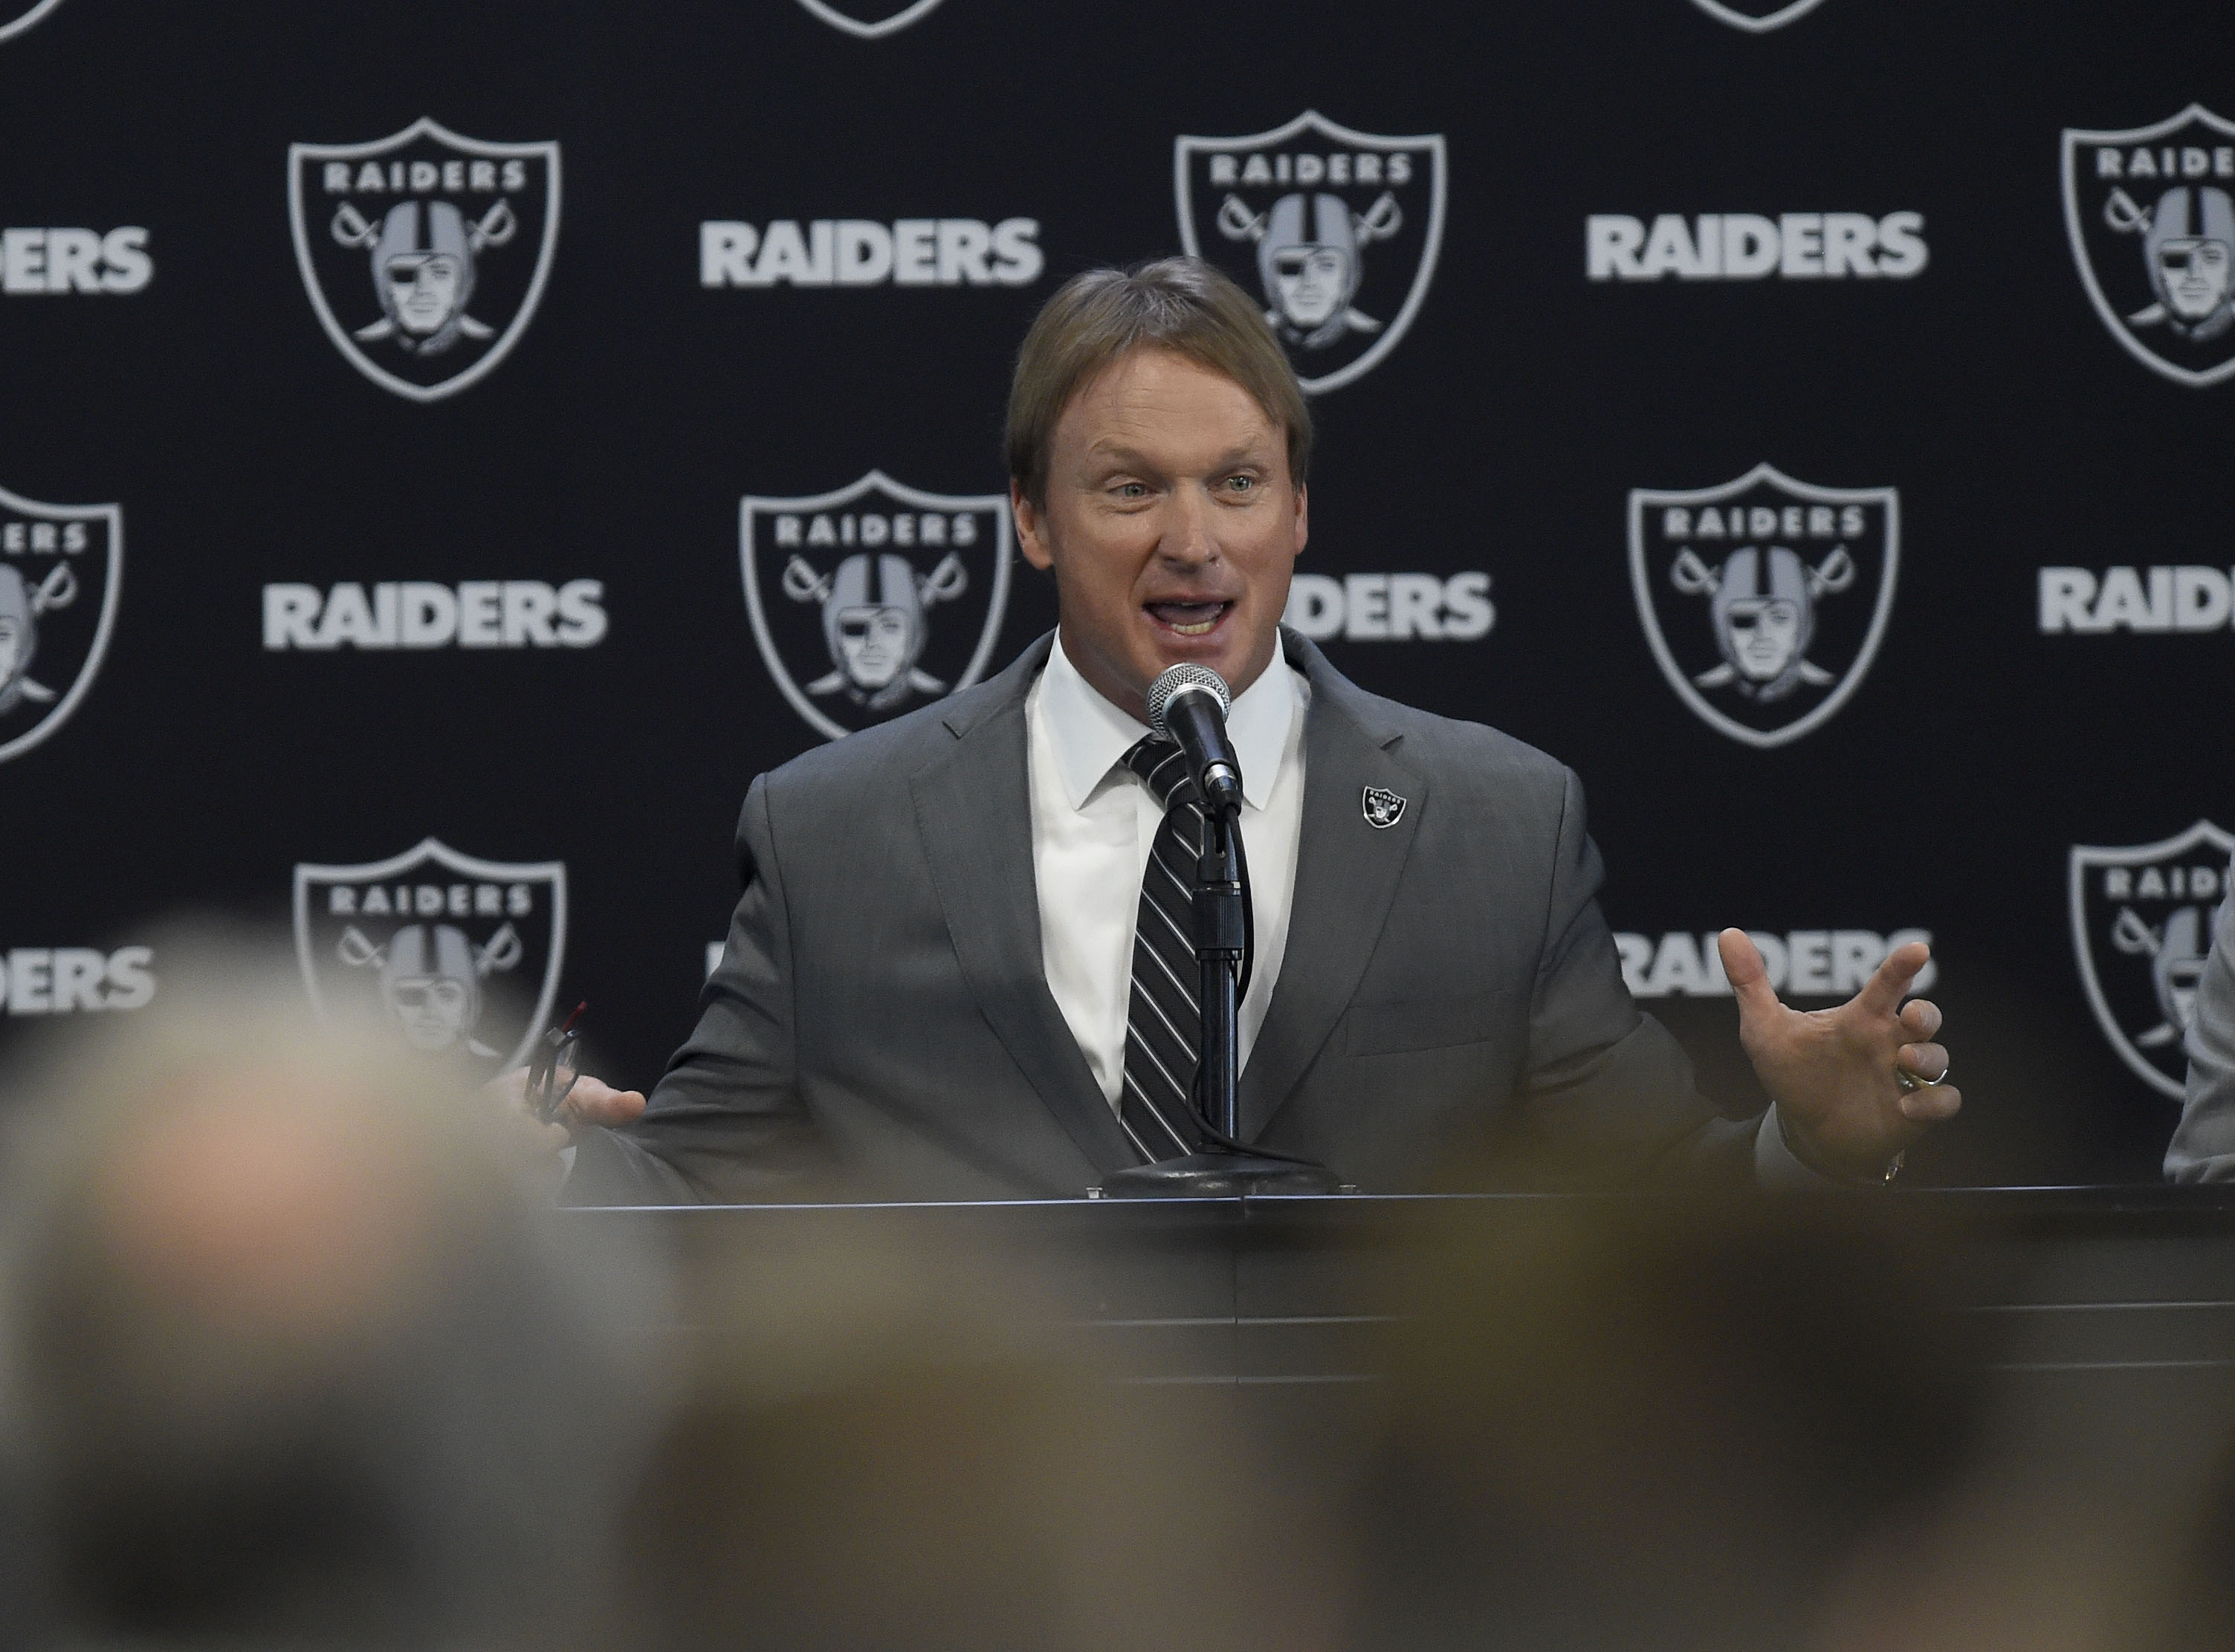 Jon Gruden answers questions from the media during the Oakland Raiders introduce him as their new head coach at the team facility in Alameda Calif. on Tuesday Jan. 9 2018